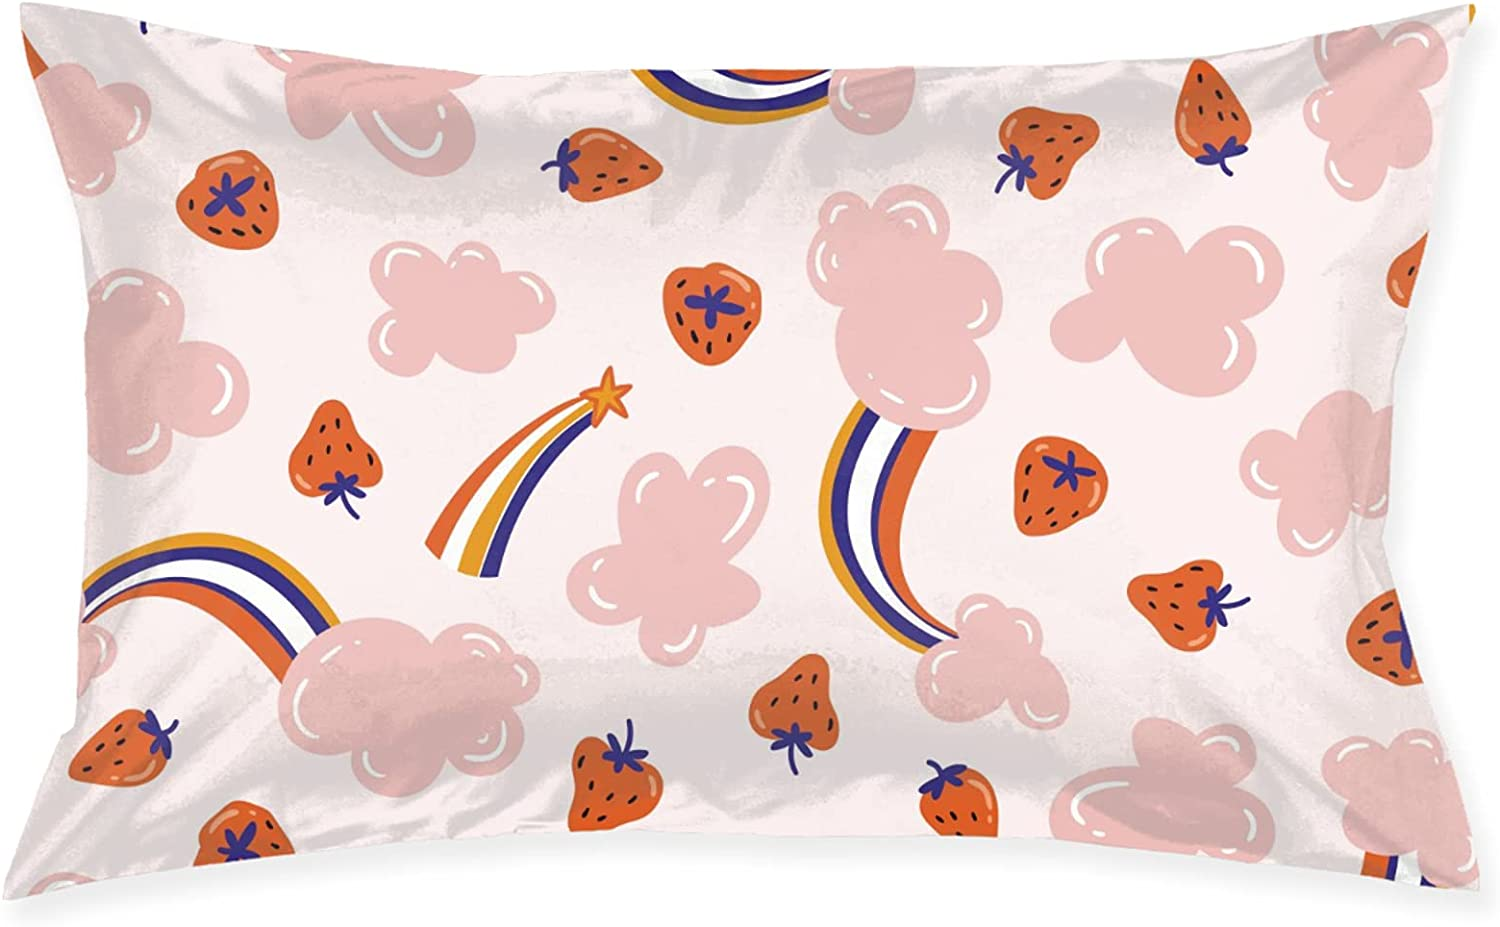 Rainbow Special sale item Sugar and Strawberries Pillowcase Sl Pillows 2021 spring summer new Bed